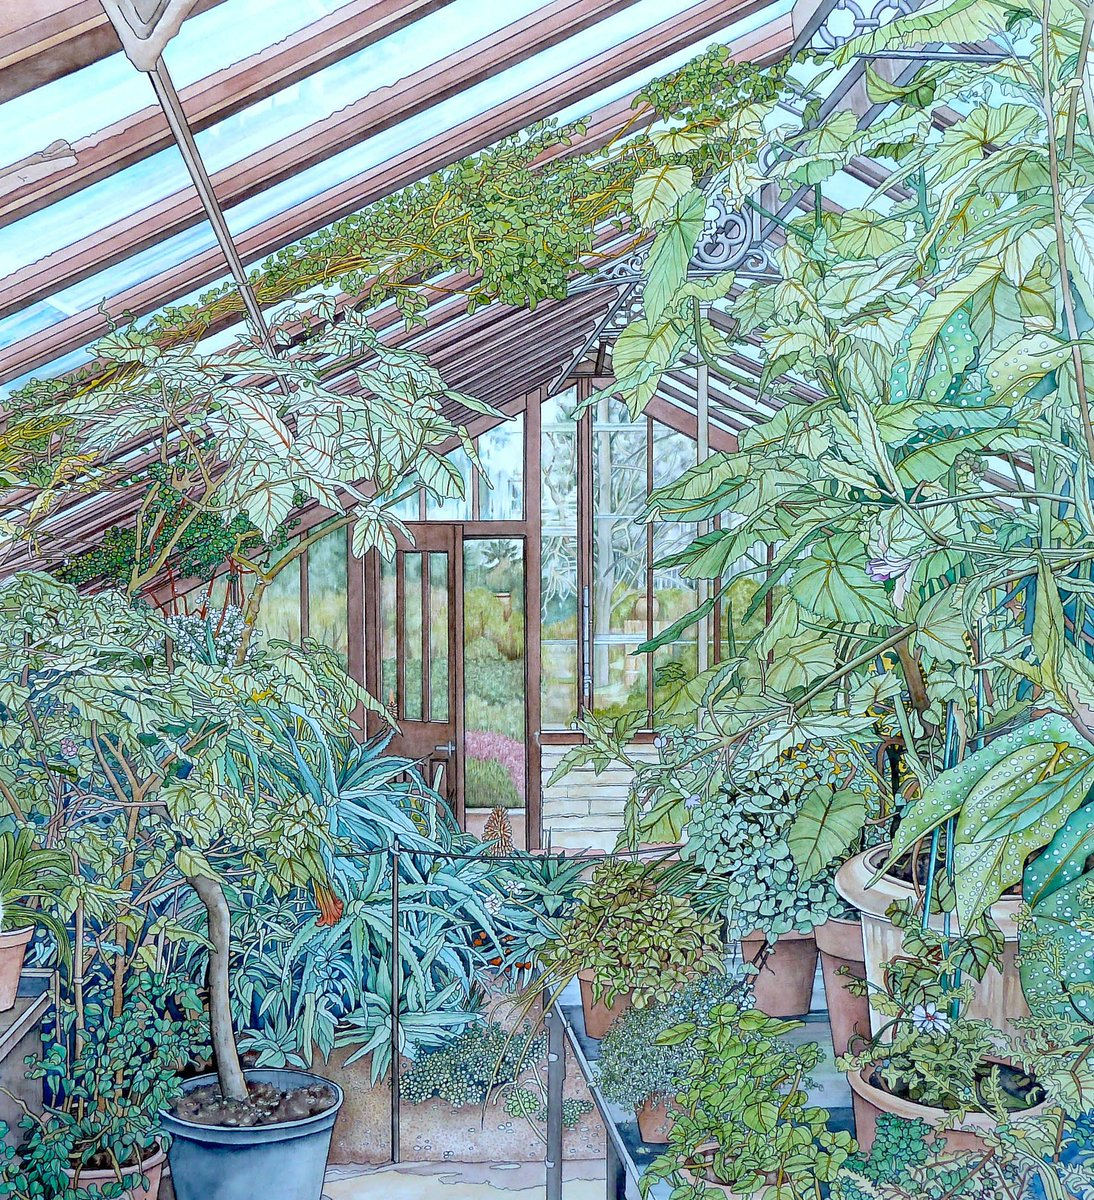 'Chelsea Physic Garden: A Year in the Life' - a new exhibition by @BanksideGallery - artists from the @RWS_Art and @re_printmakers. Pictured: 'Part of the Glasshouse', Meg Dutton RE. Thurs 12 - Mon 30 August ow.ly/Iewy50FBkHq #exhibition #artists #watercolour #printing